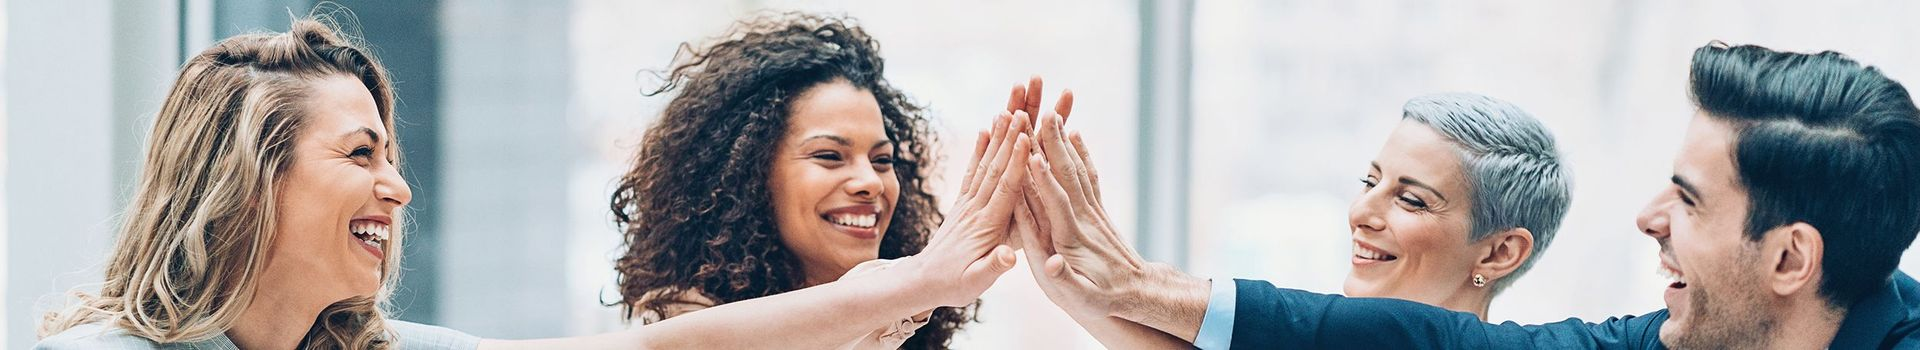 Smiling employees giving each other a high-five in the office